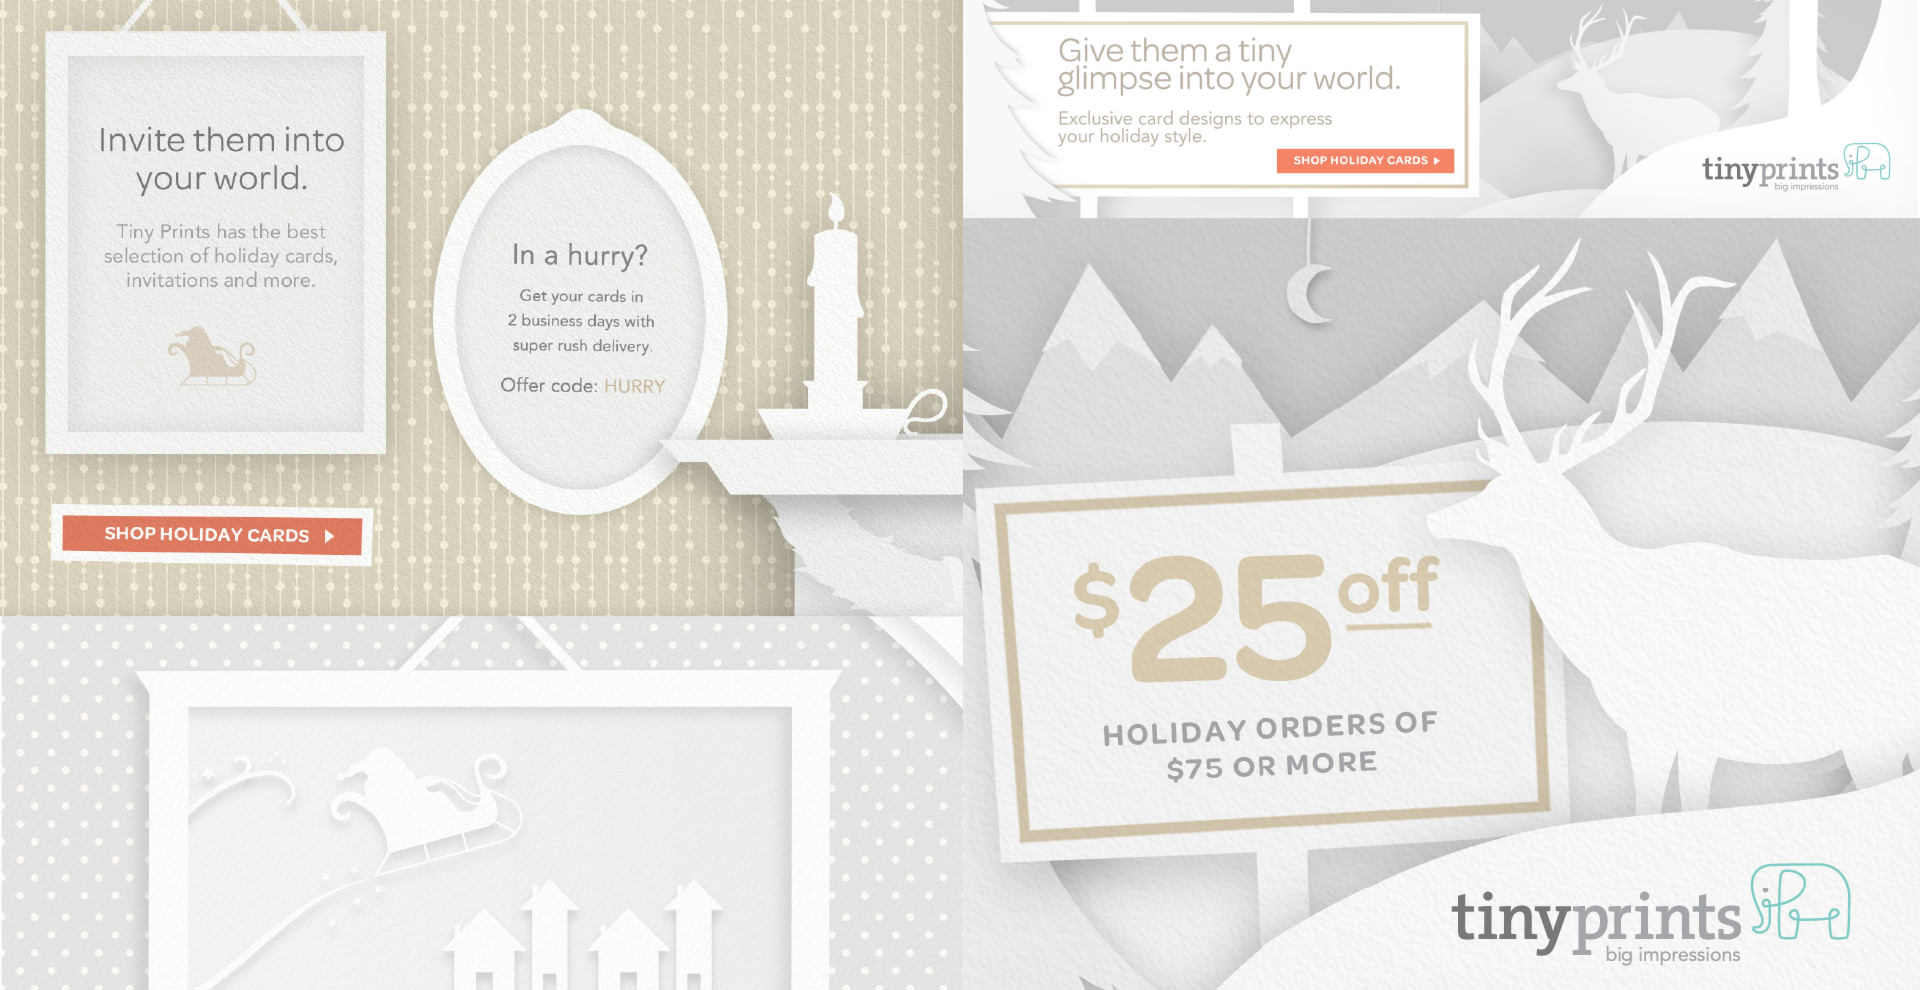 tinyprints_holiday_campaign_10